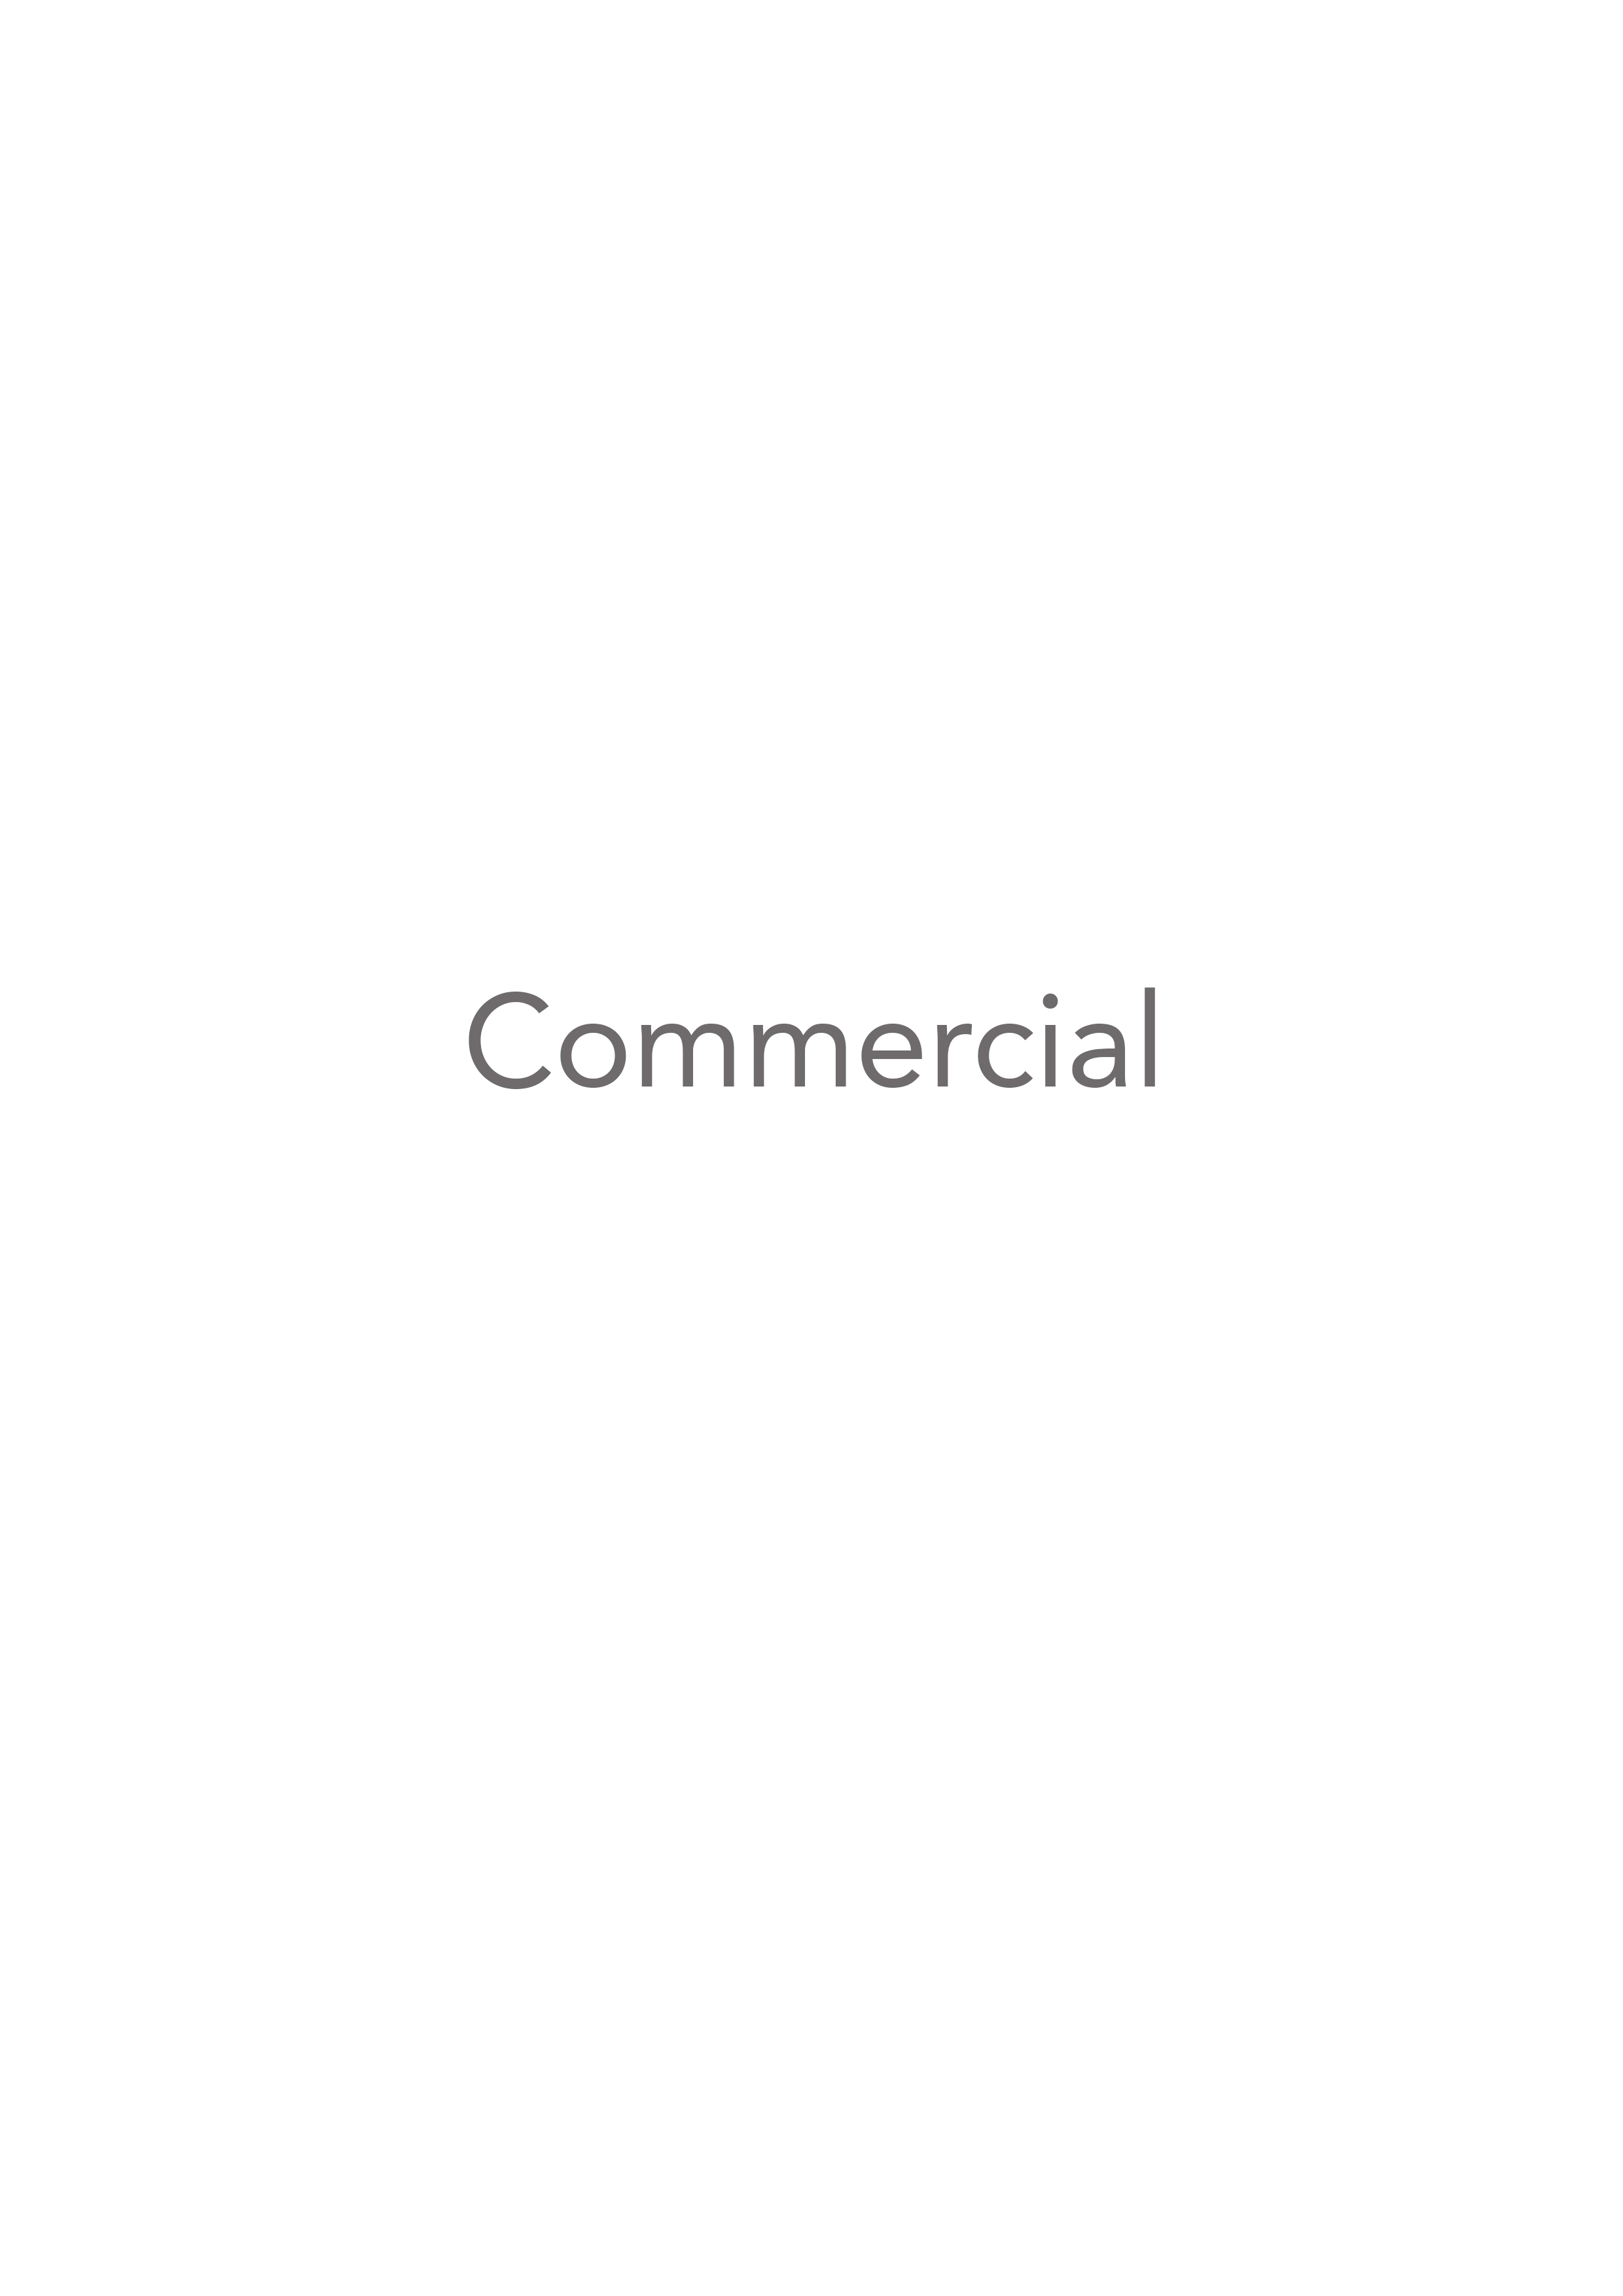 A4 Commercial.jpg